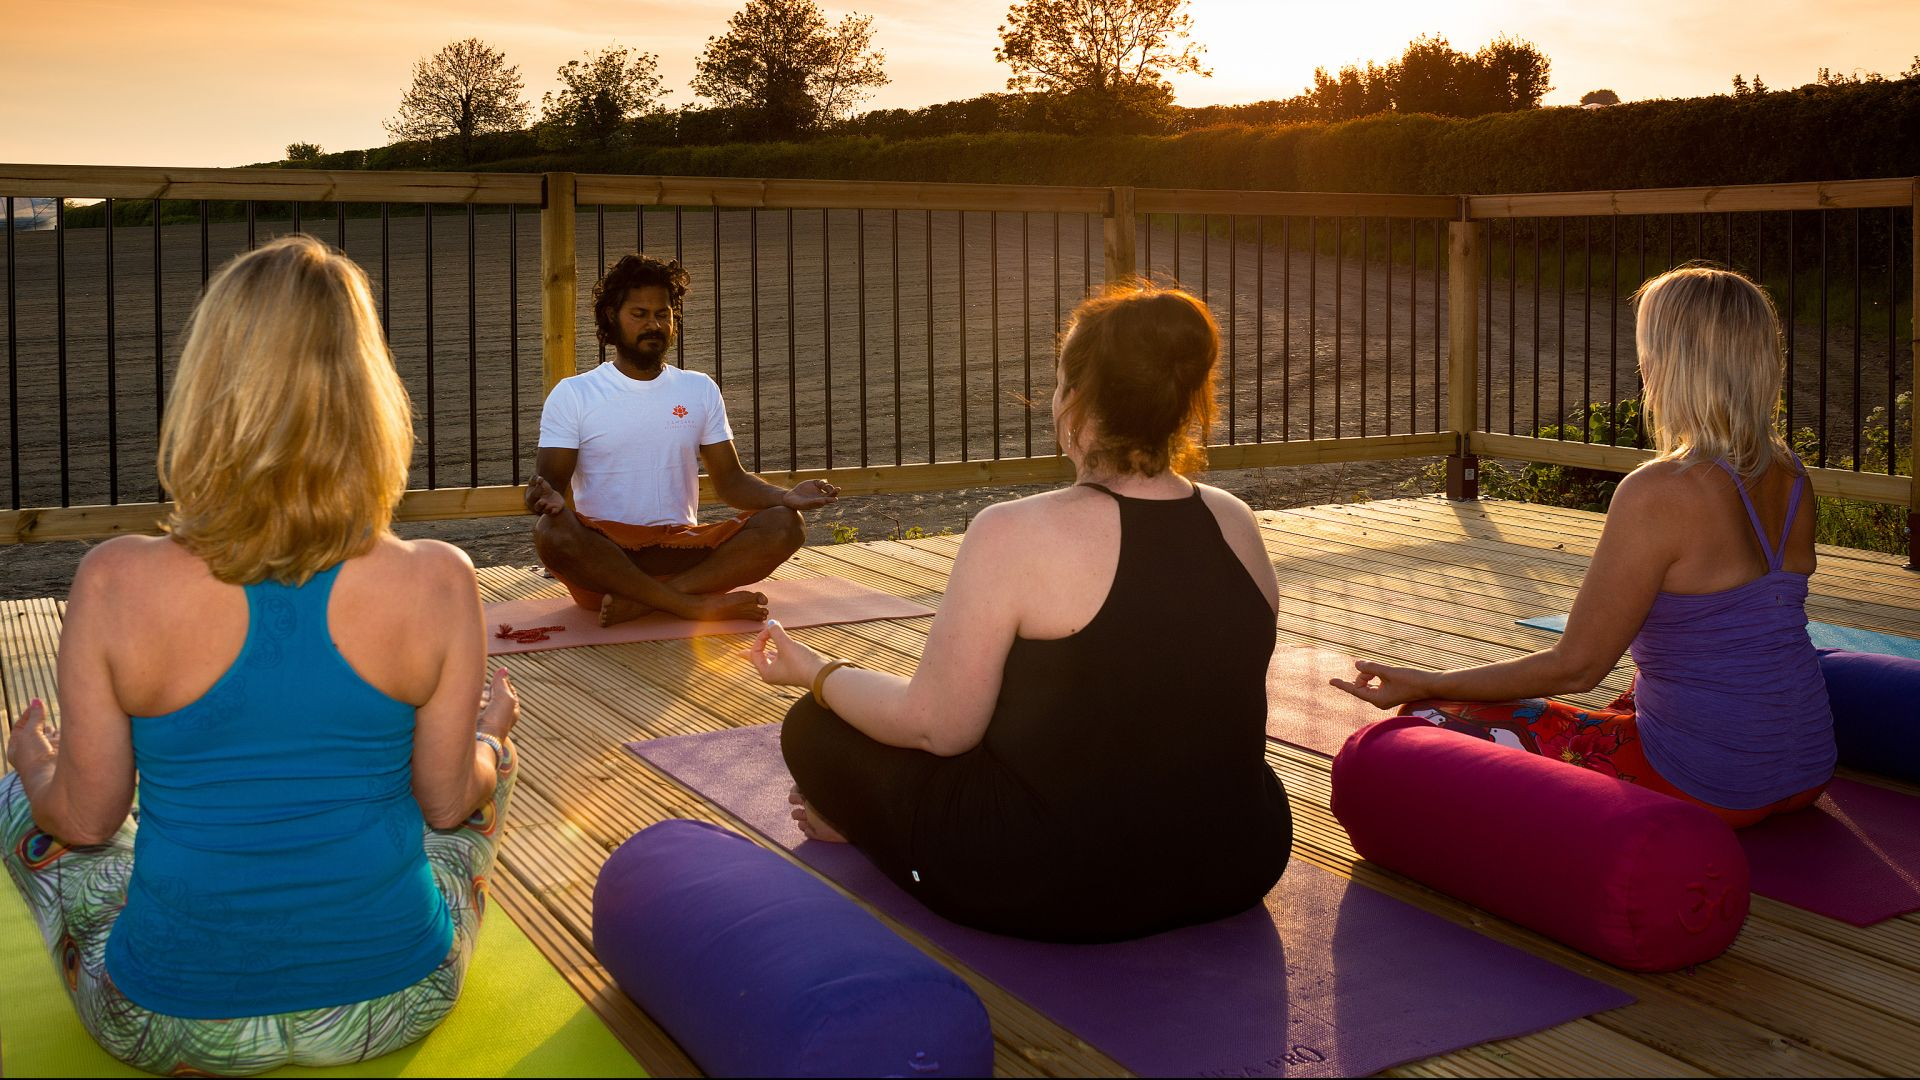 Trained Yoga Professionals - Here to help you every step of the way.